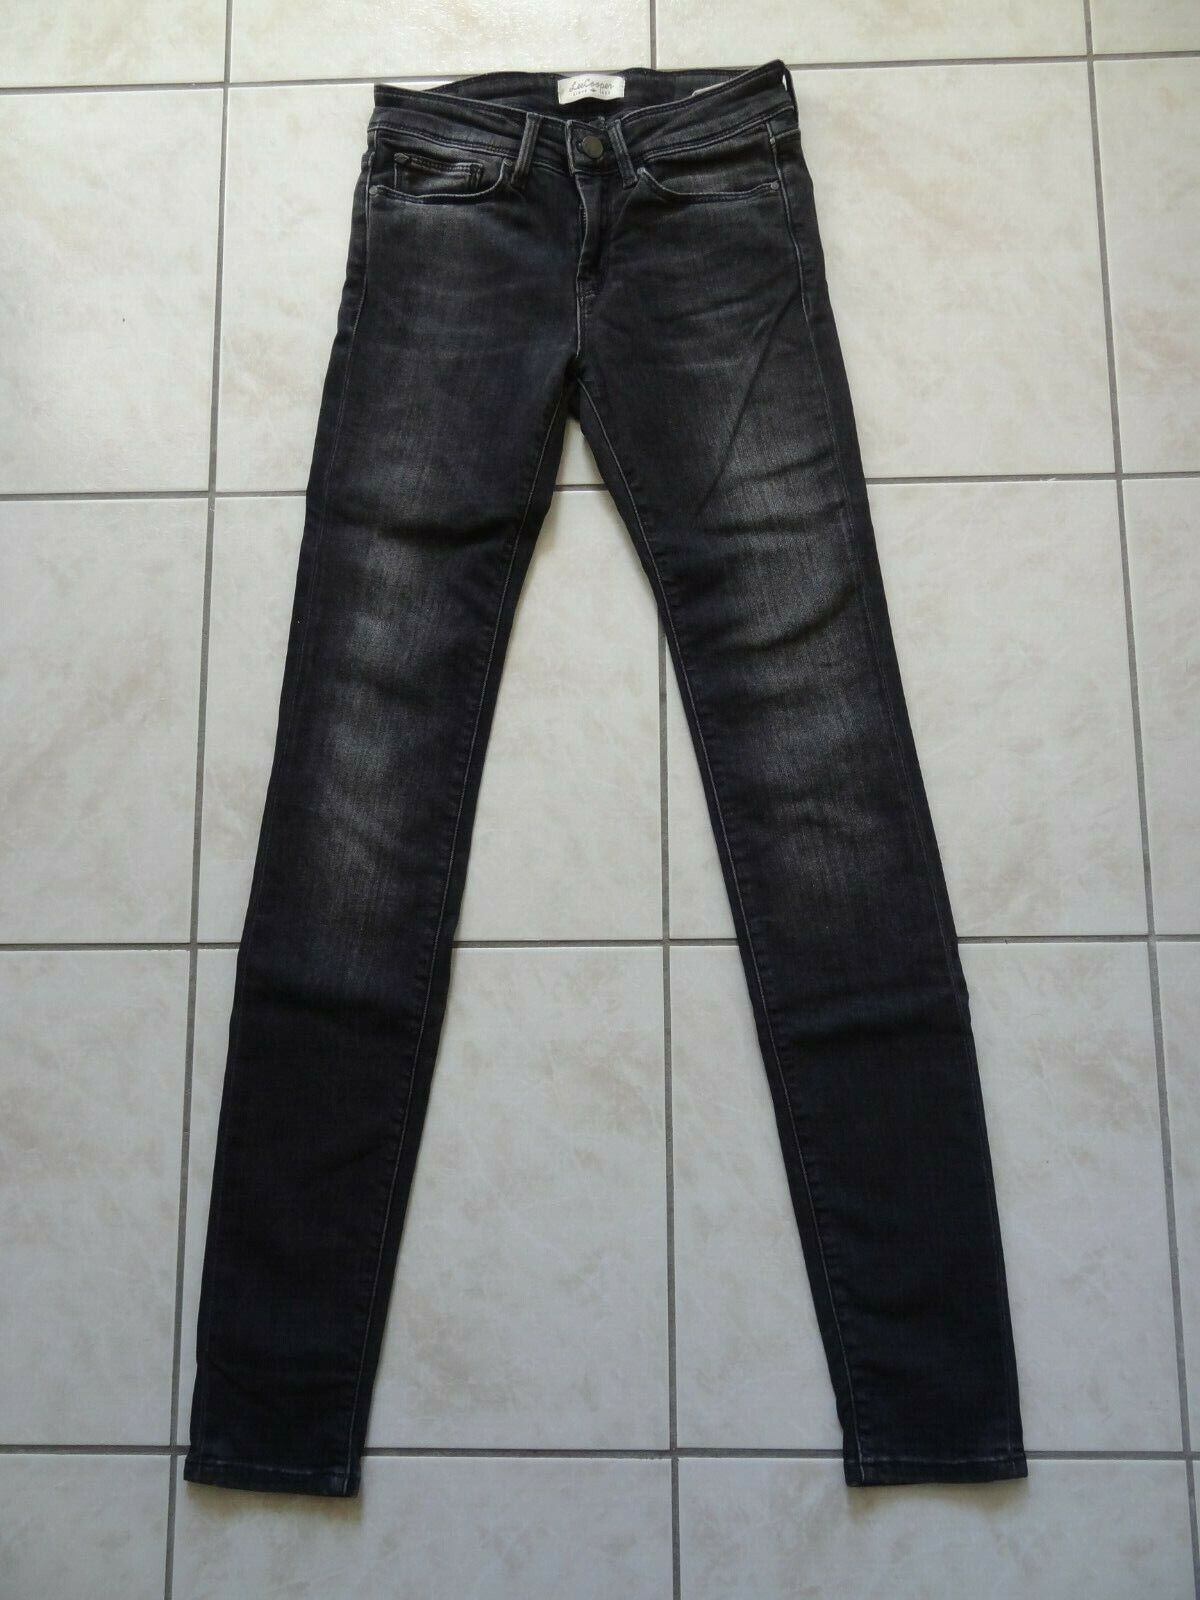 Superbe jean noir skinny lee cooper taille w 24-32 comme neuf !